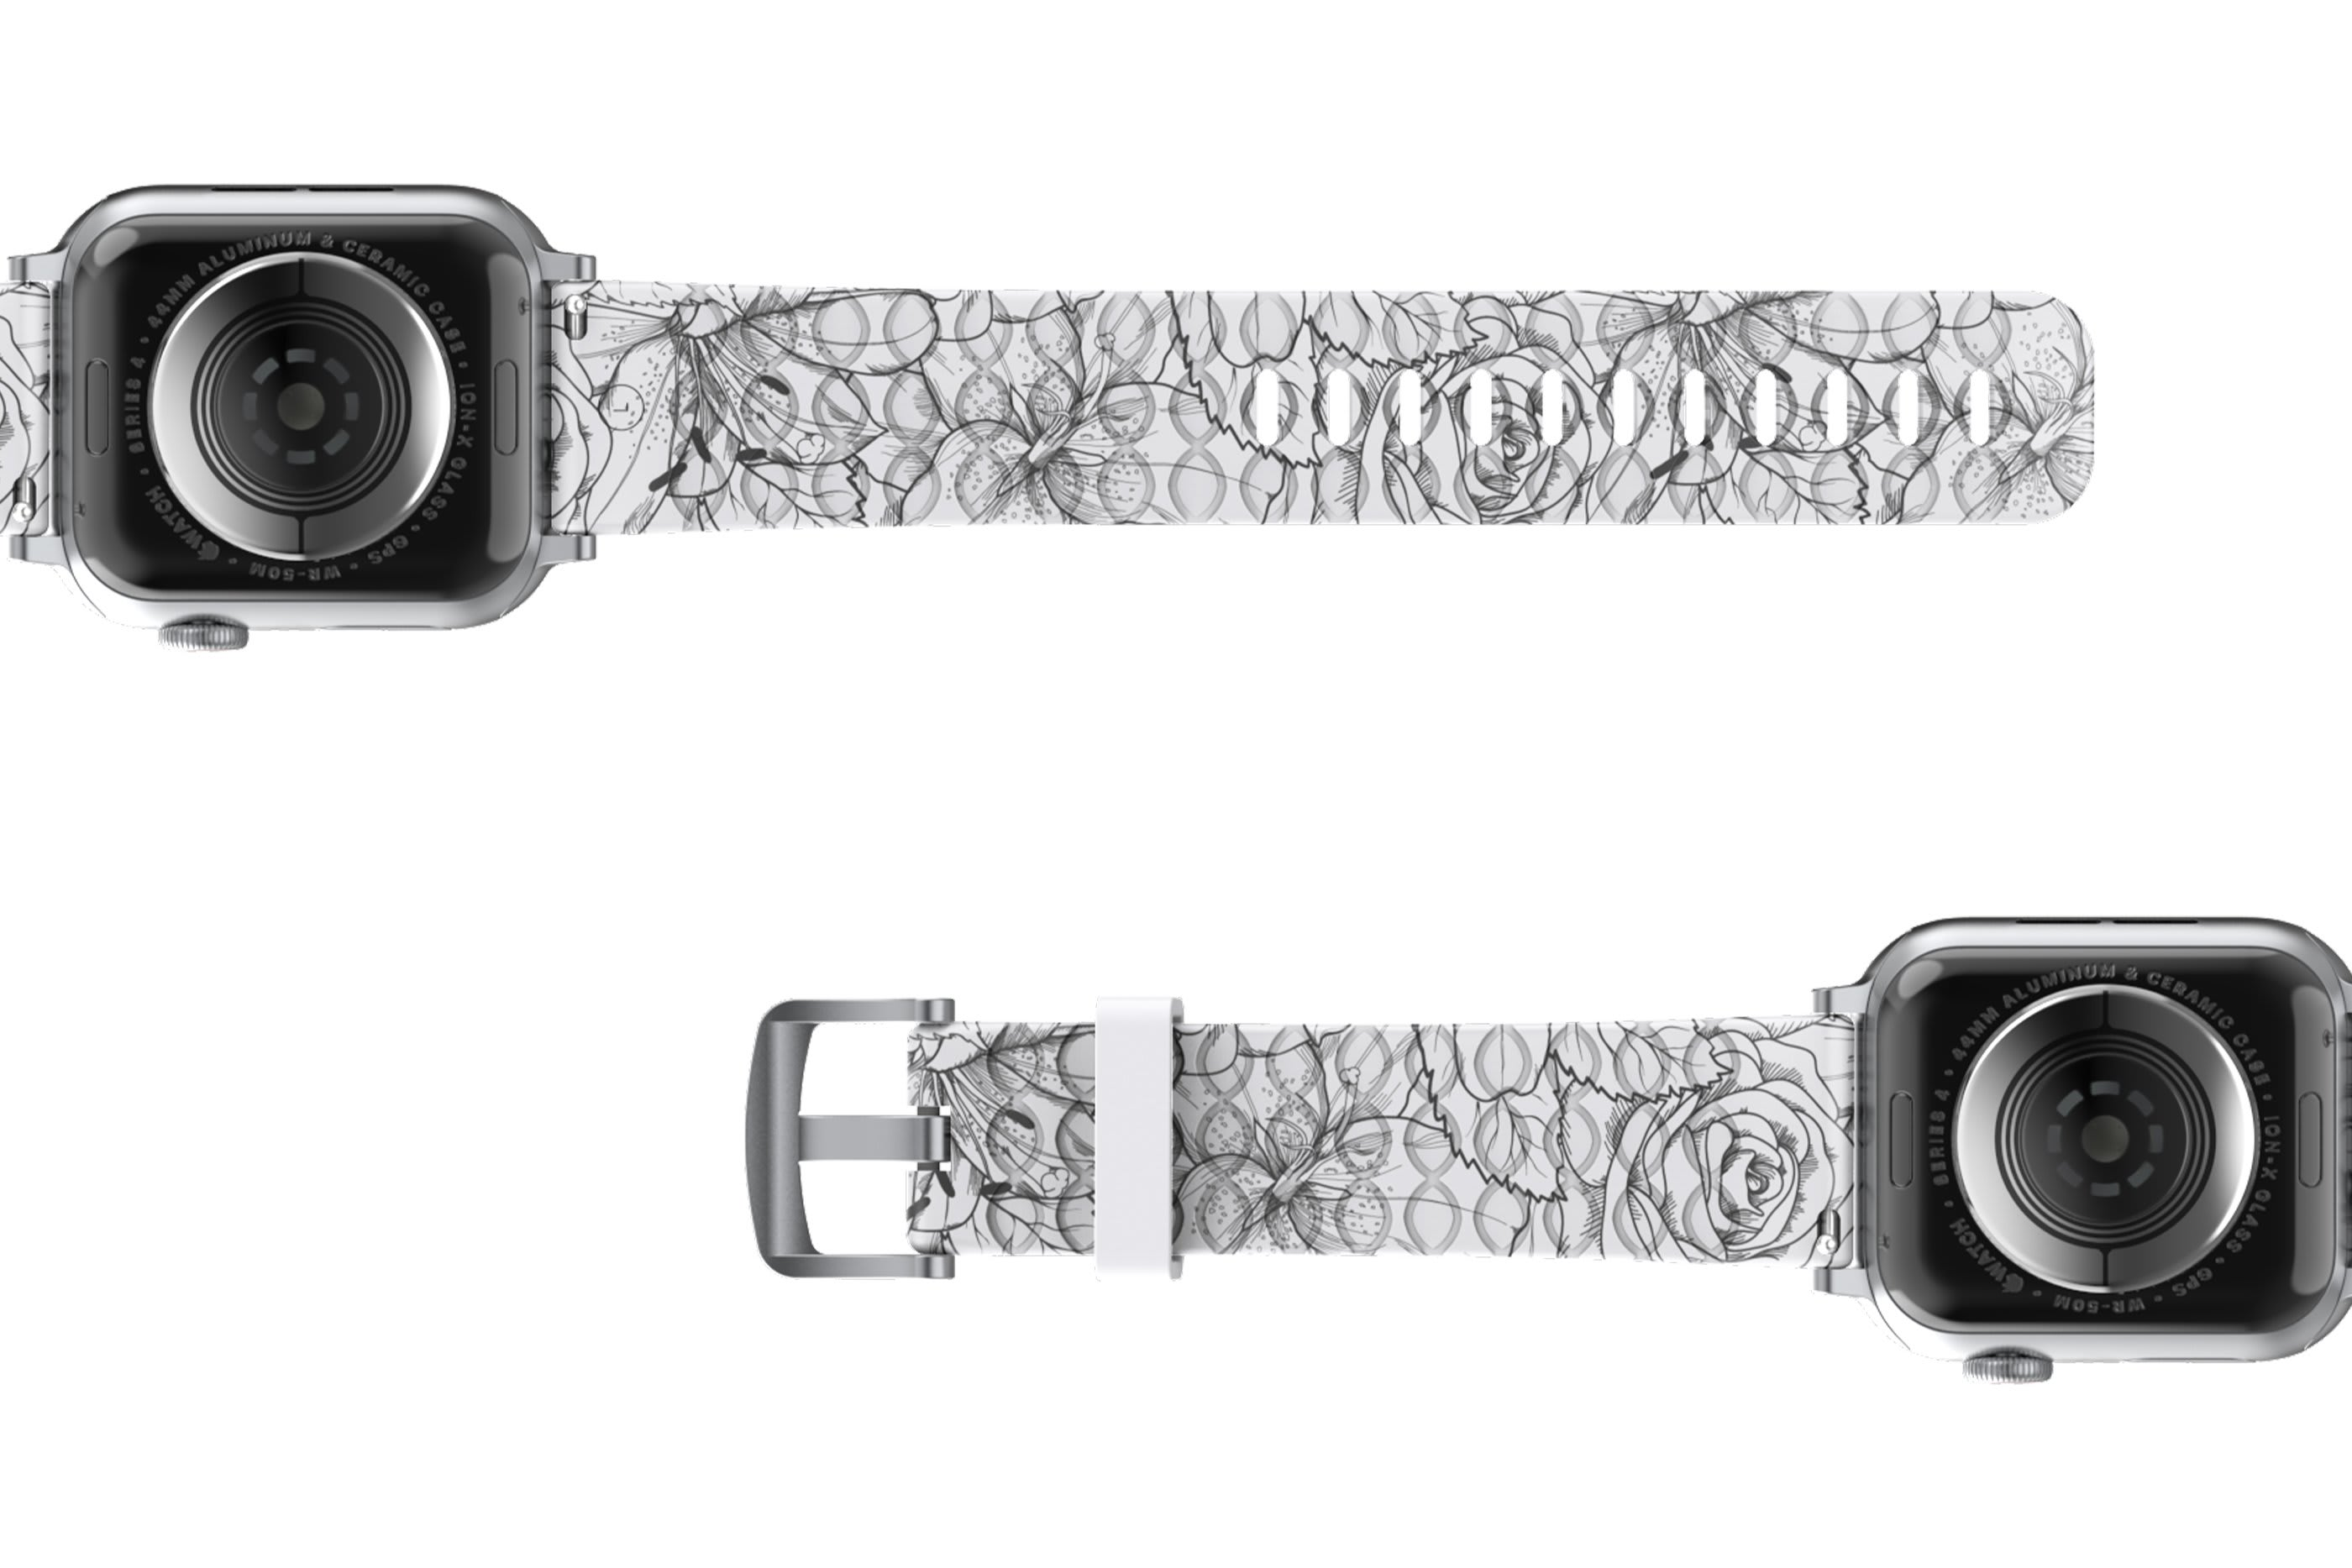 Winter Rose Apple Watch Band with Silver hardware viewed bottom up